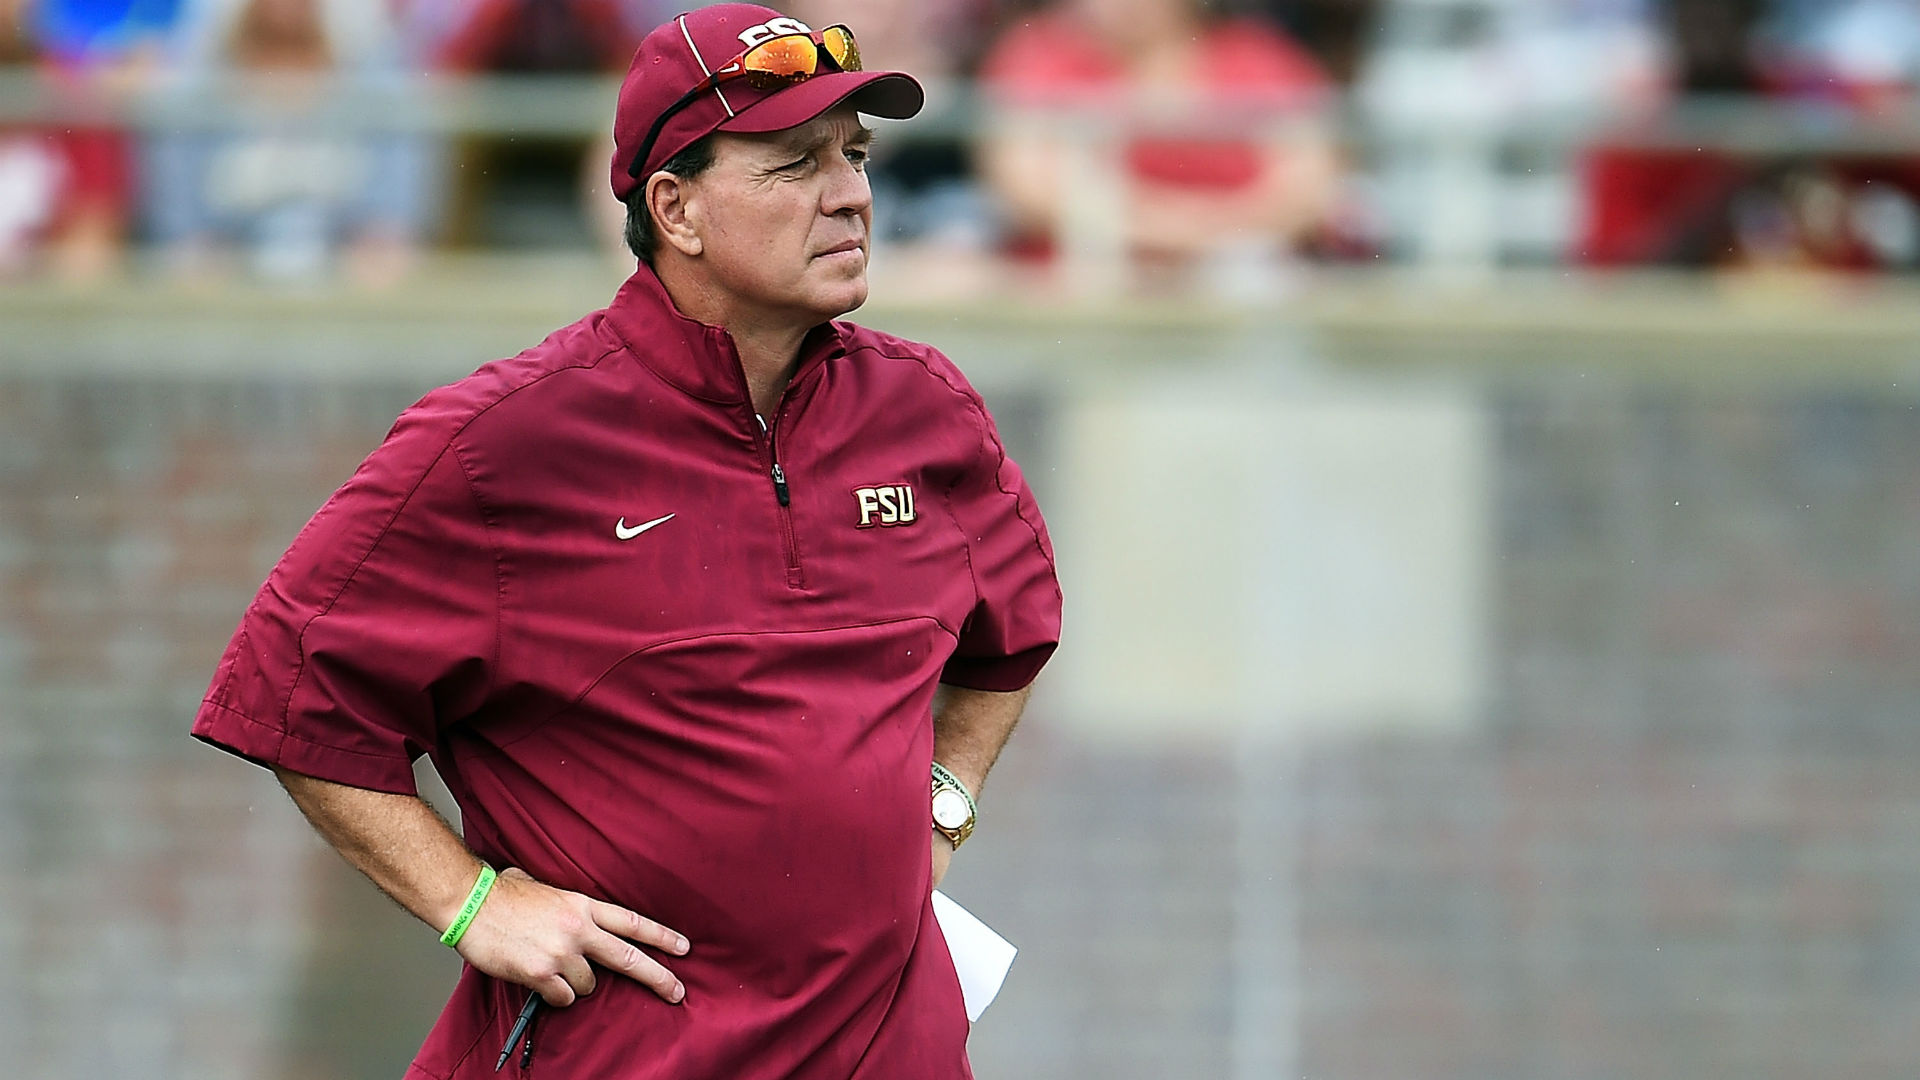 Jimbo Fisher's deal with Texas A&M nearly finalized, per reports